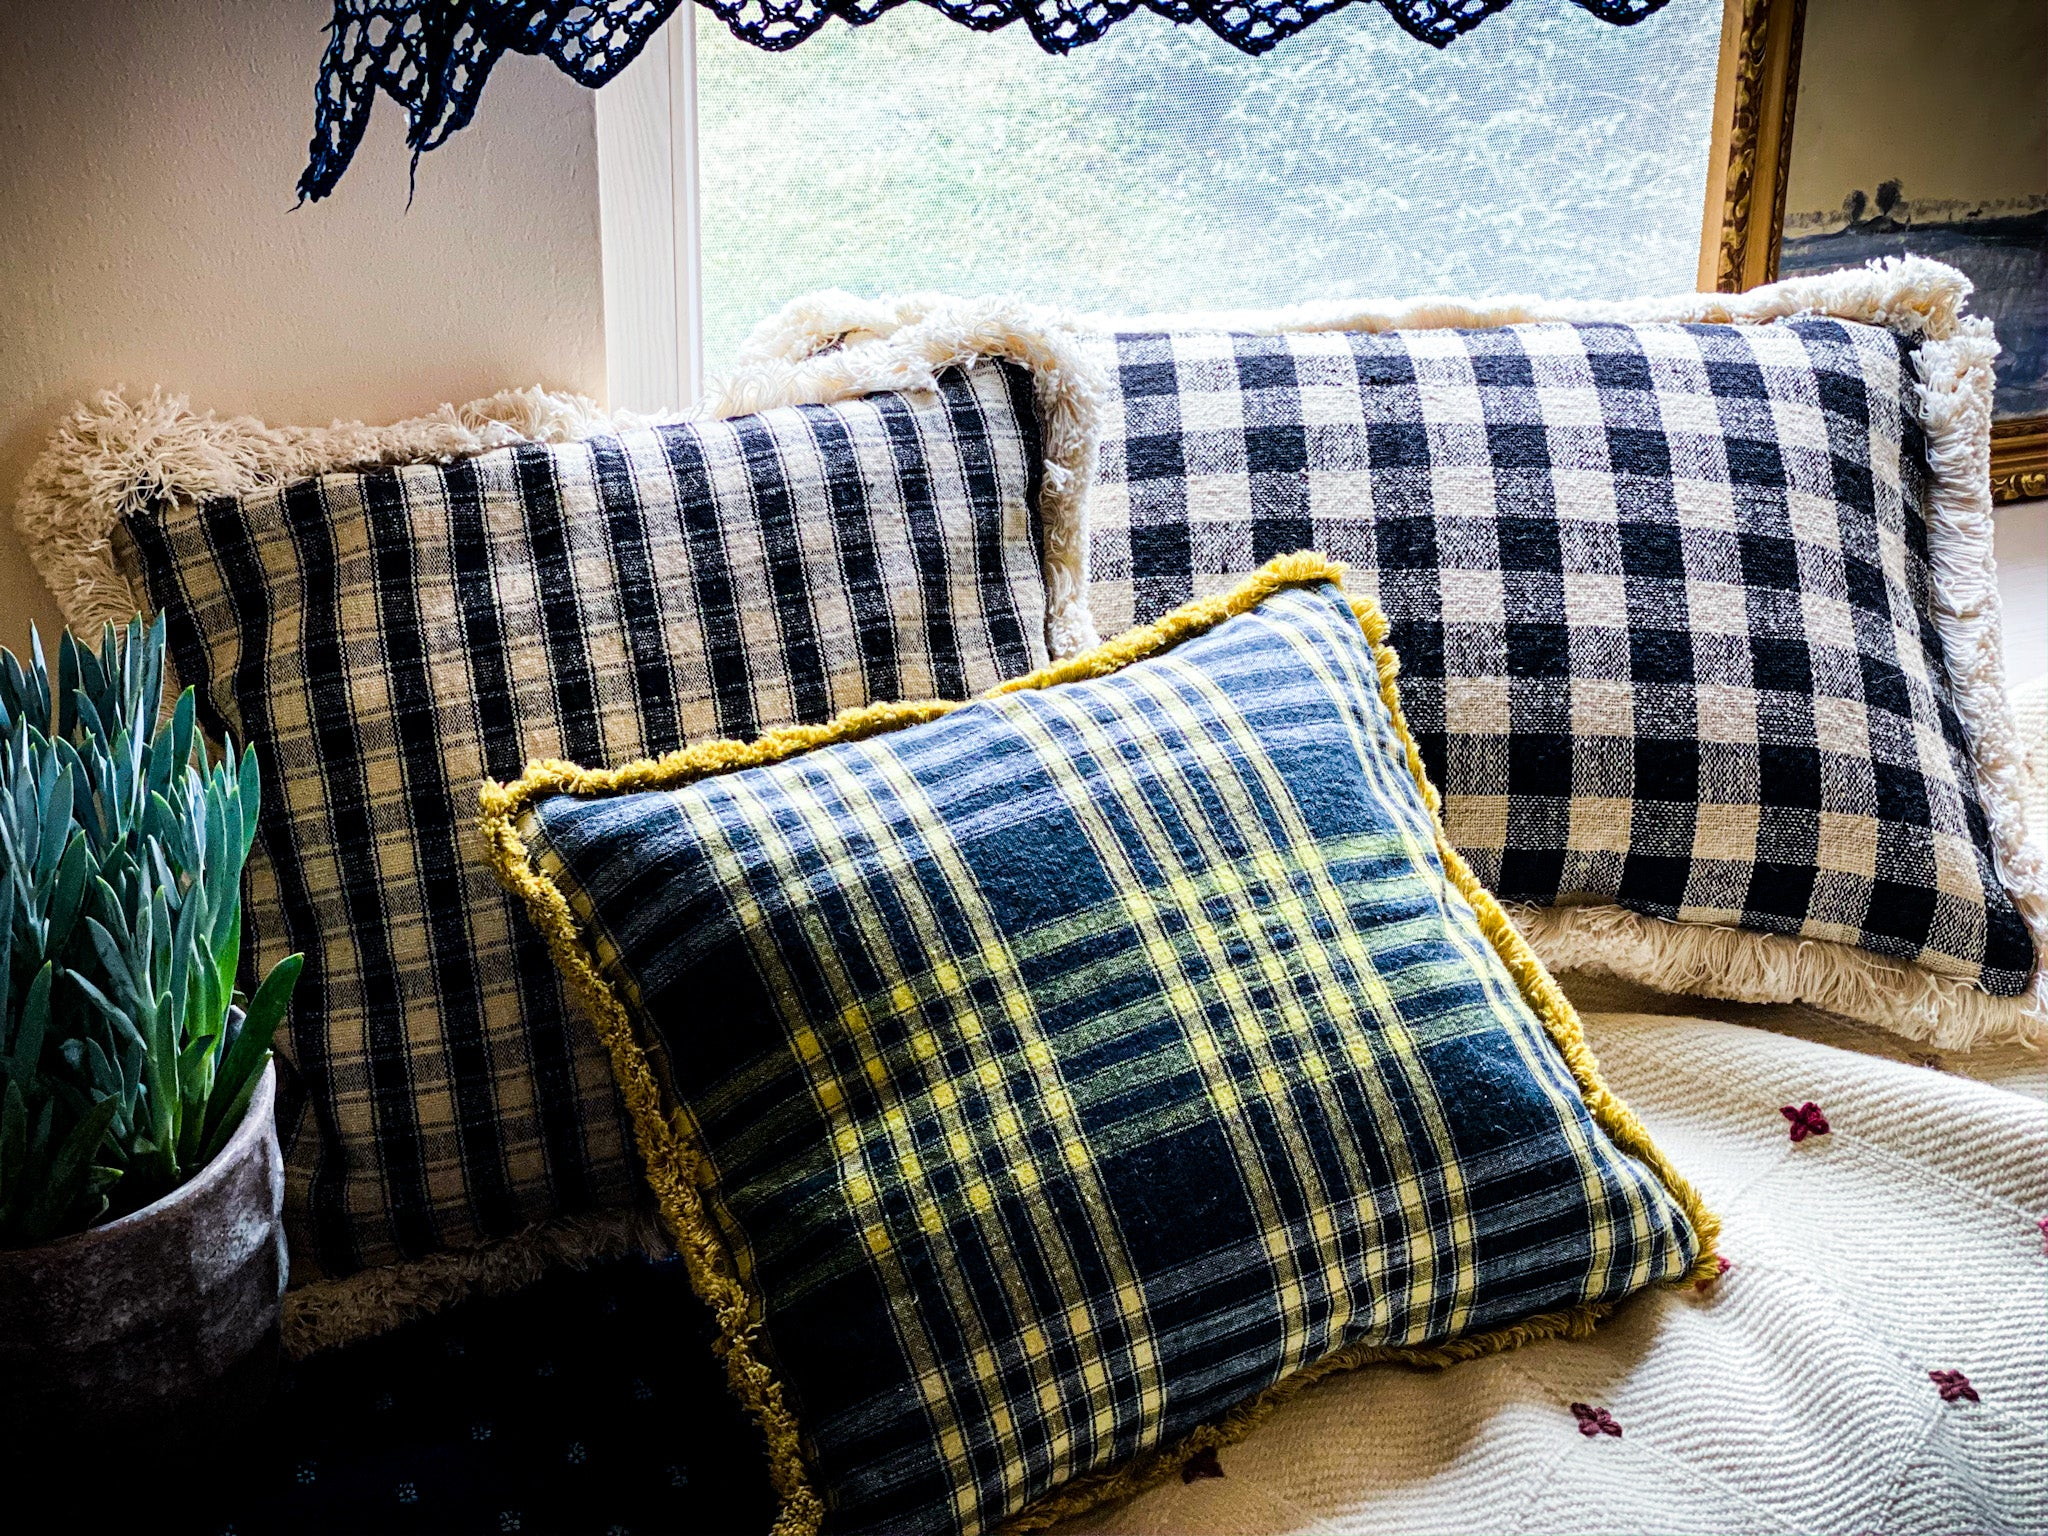 Pillow: Handwoven antique Bulgarian wool